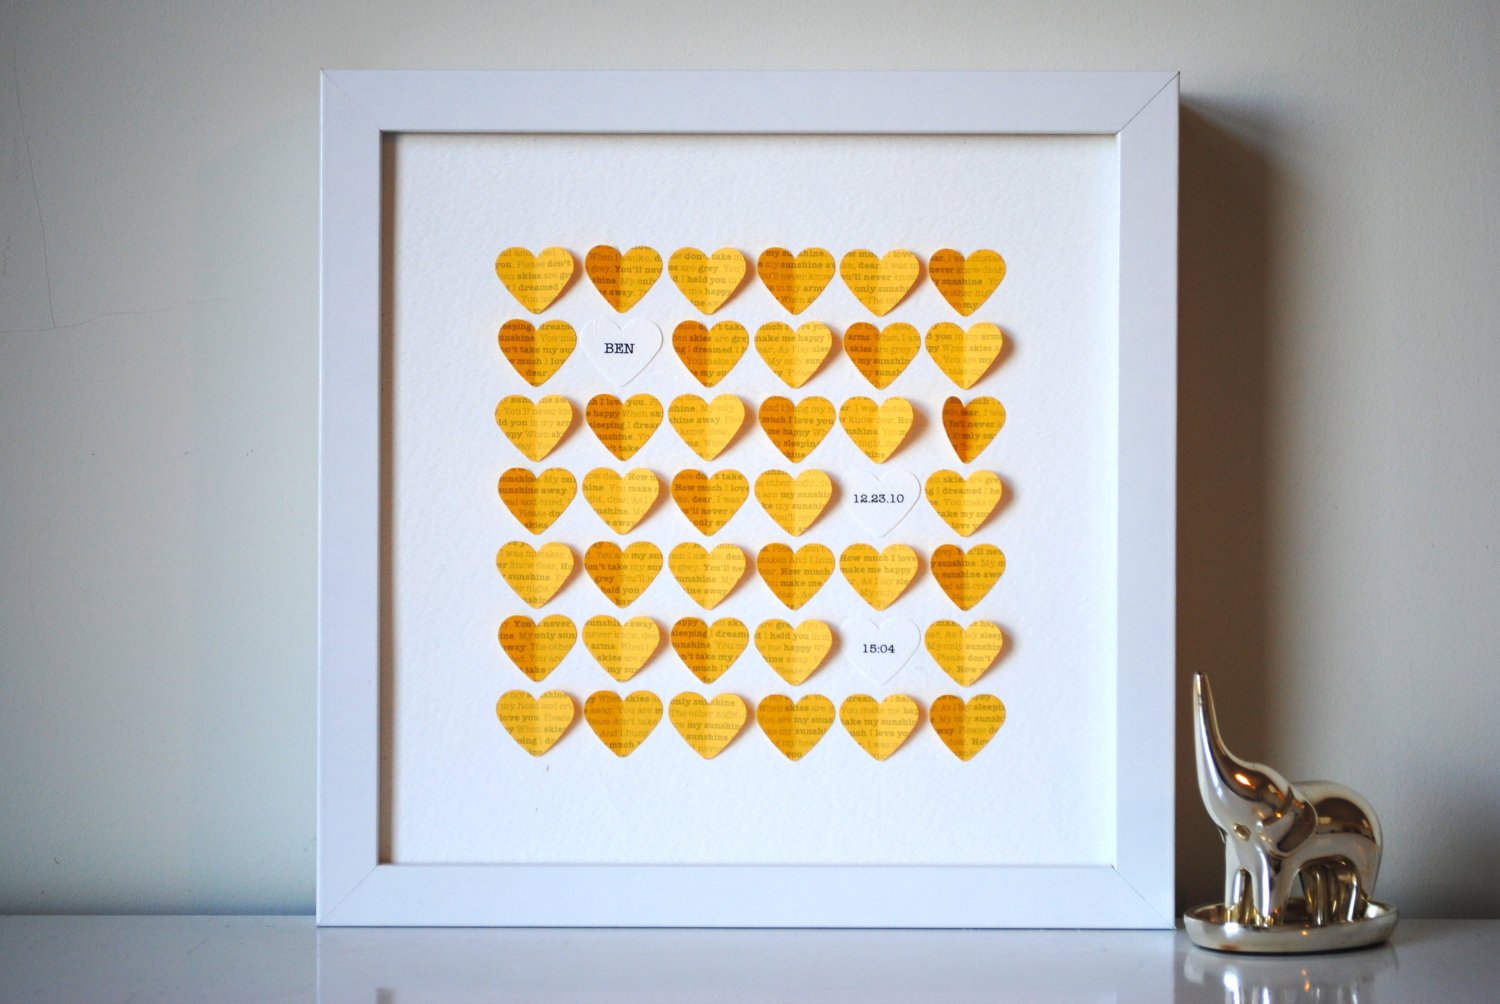 personalized shadow box heart frame - yellow hearts